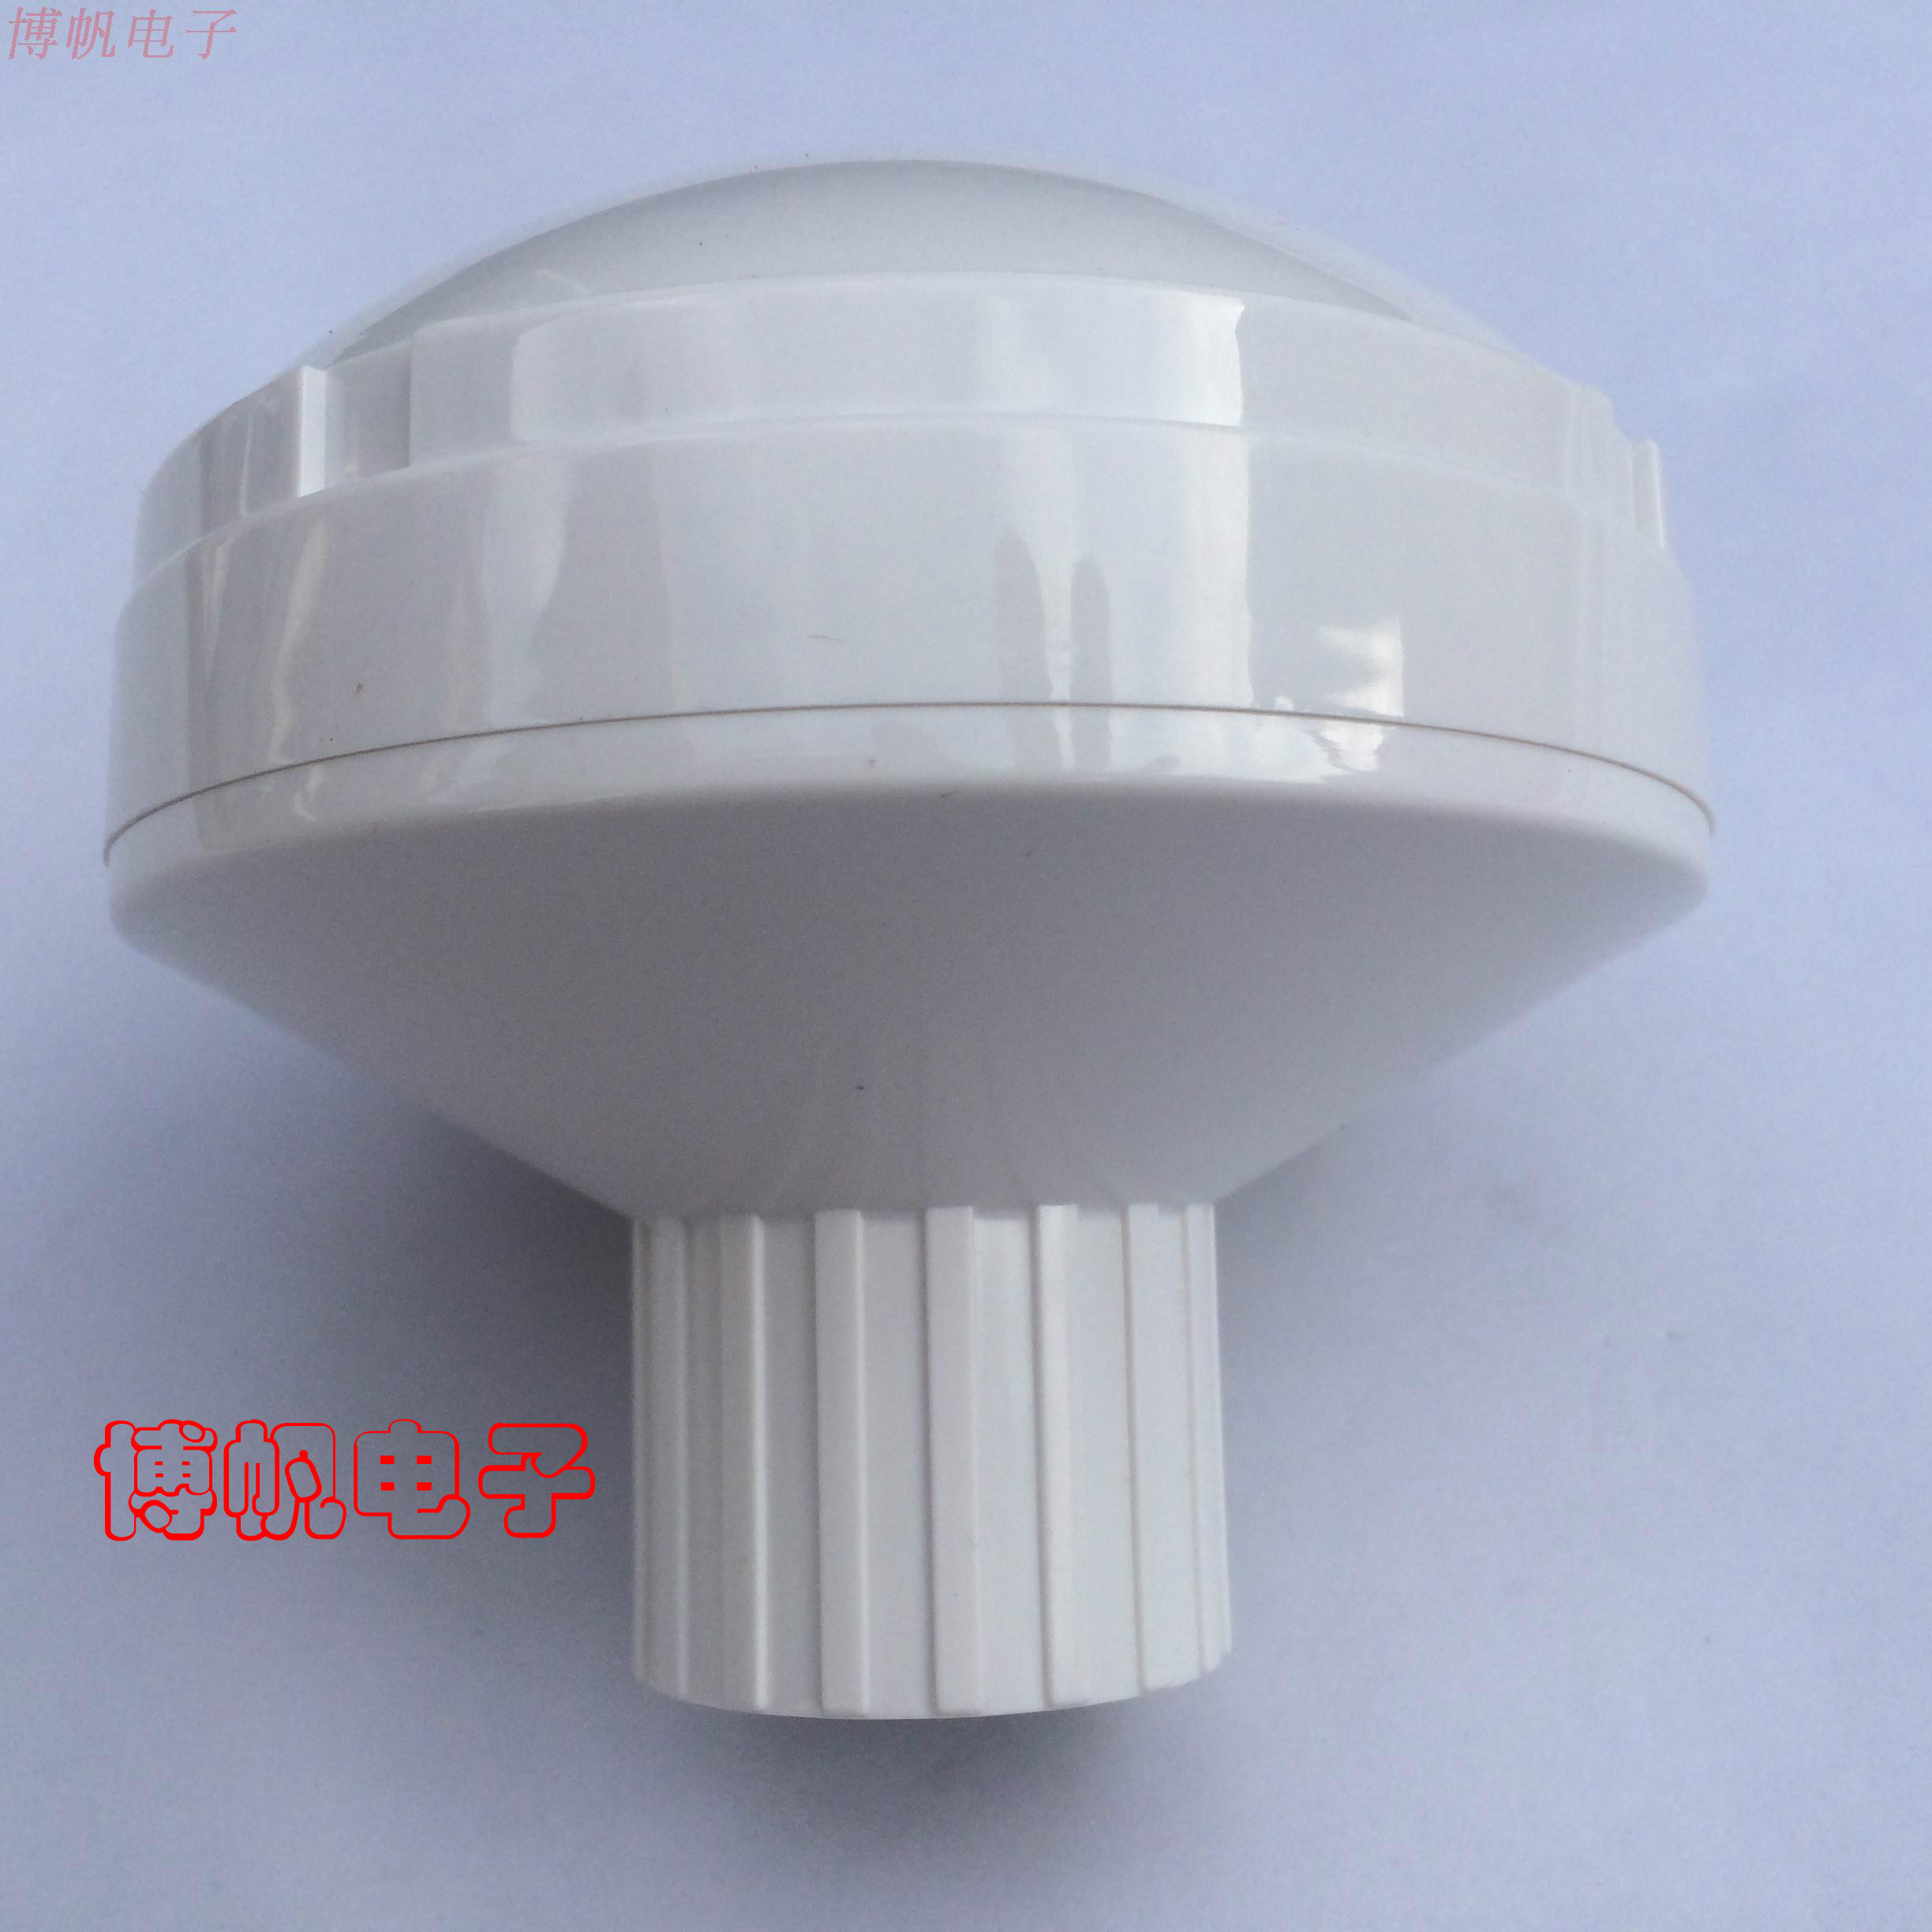 GPS base station antenna housing large mushroom head antenna housing  navigation antenna housing timing antenna housing